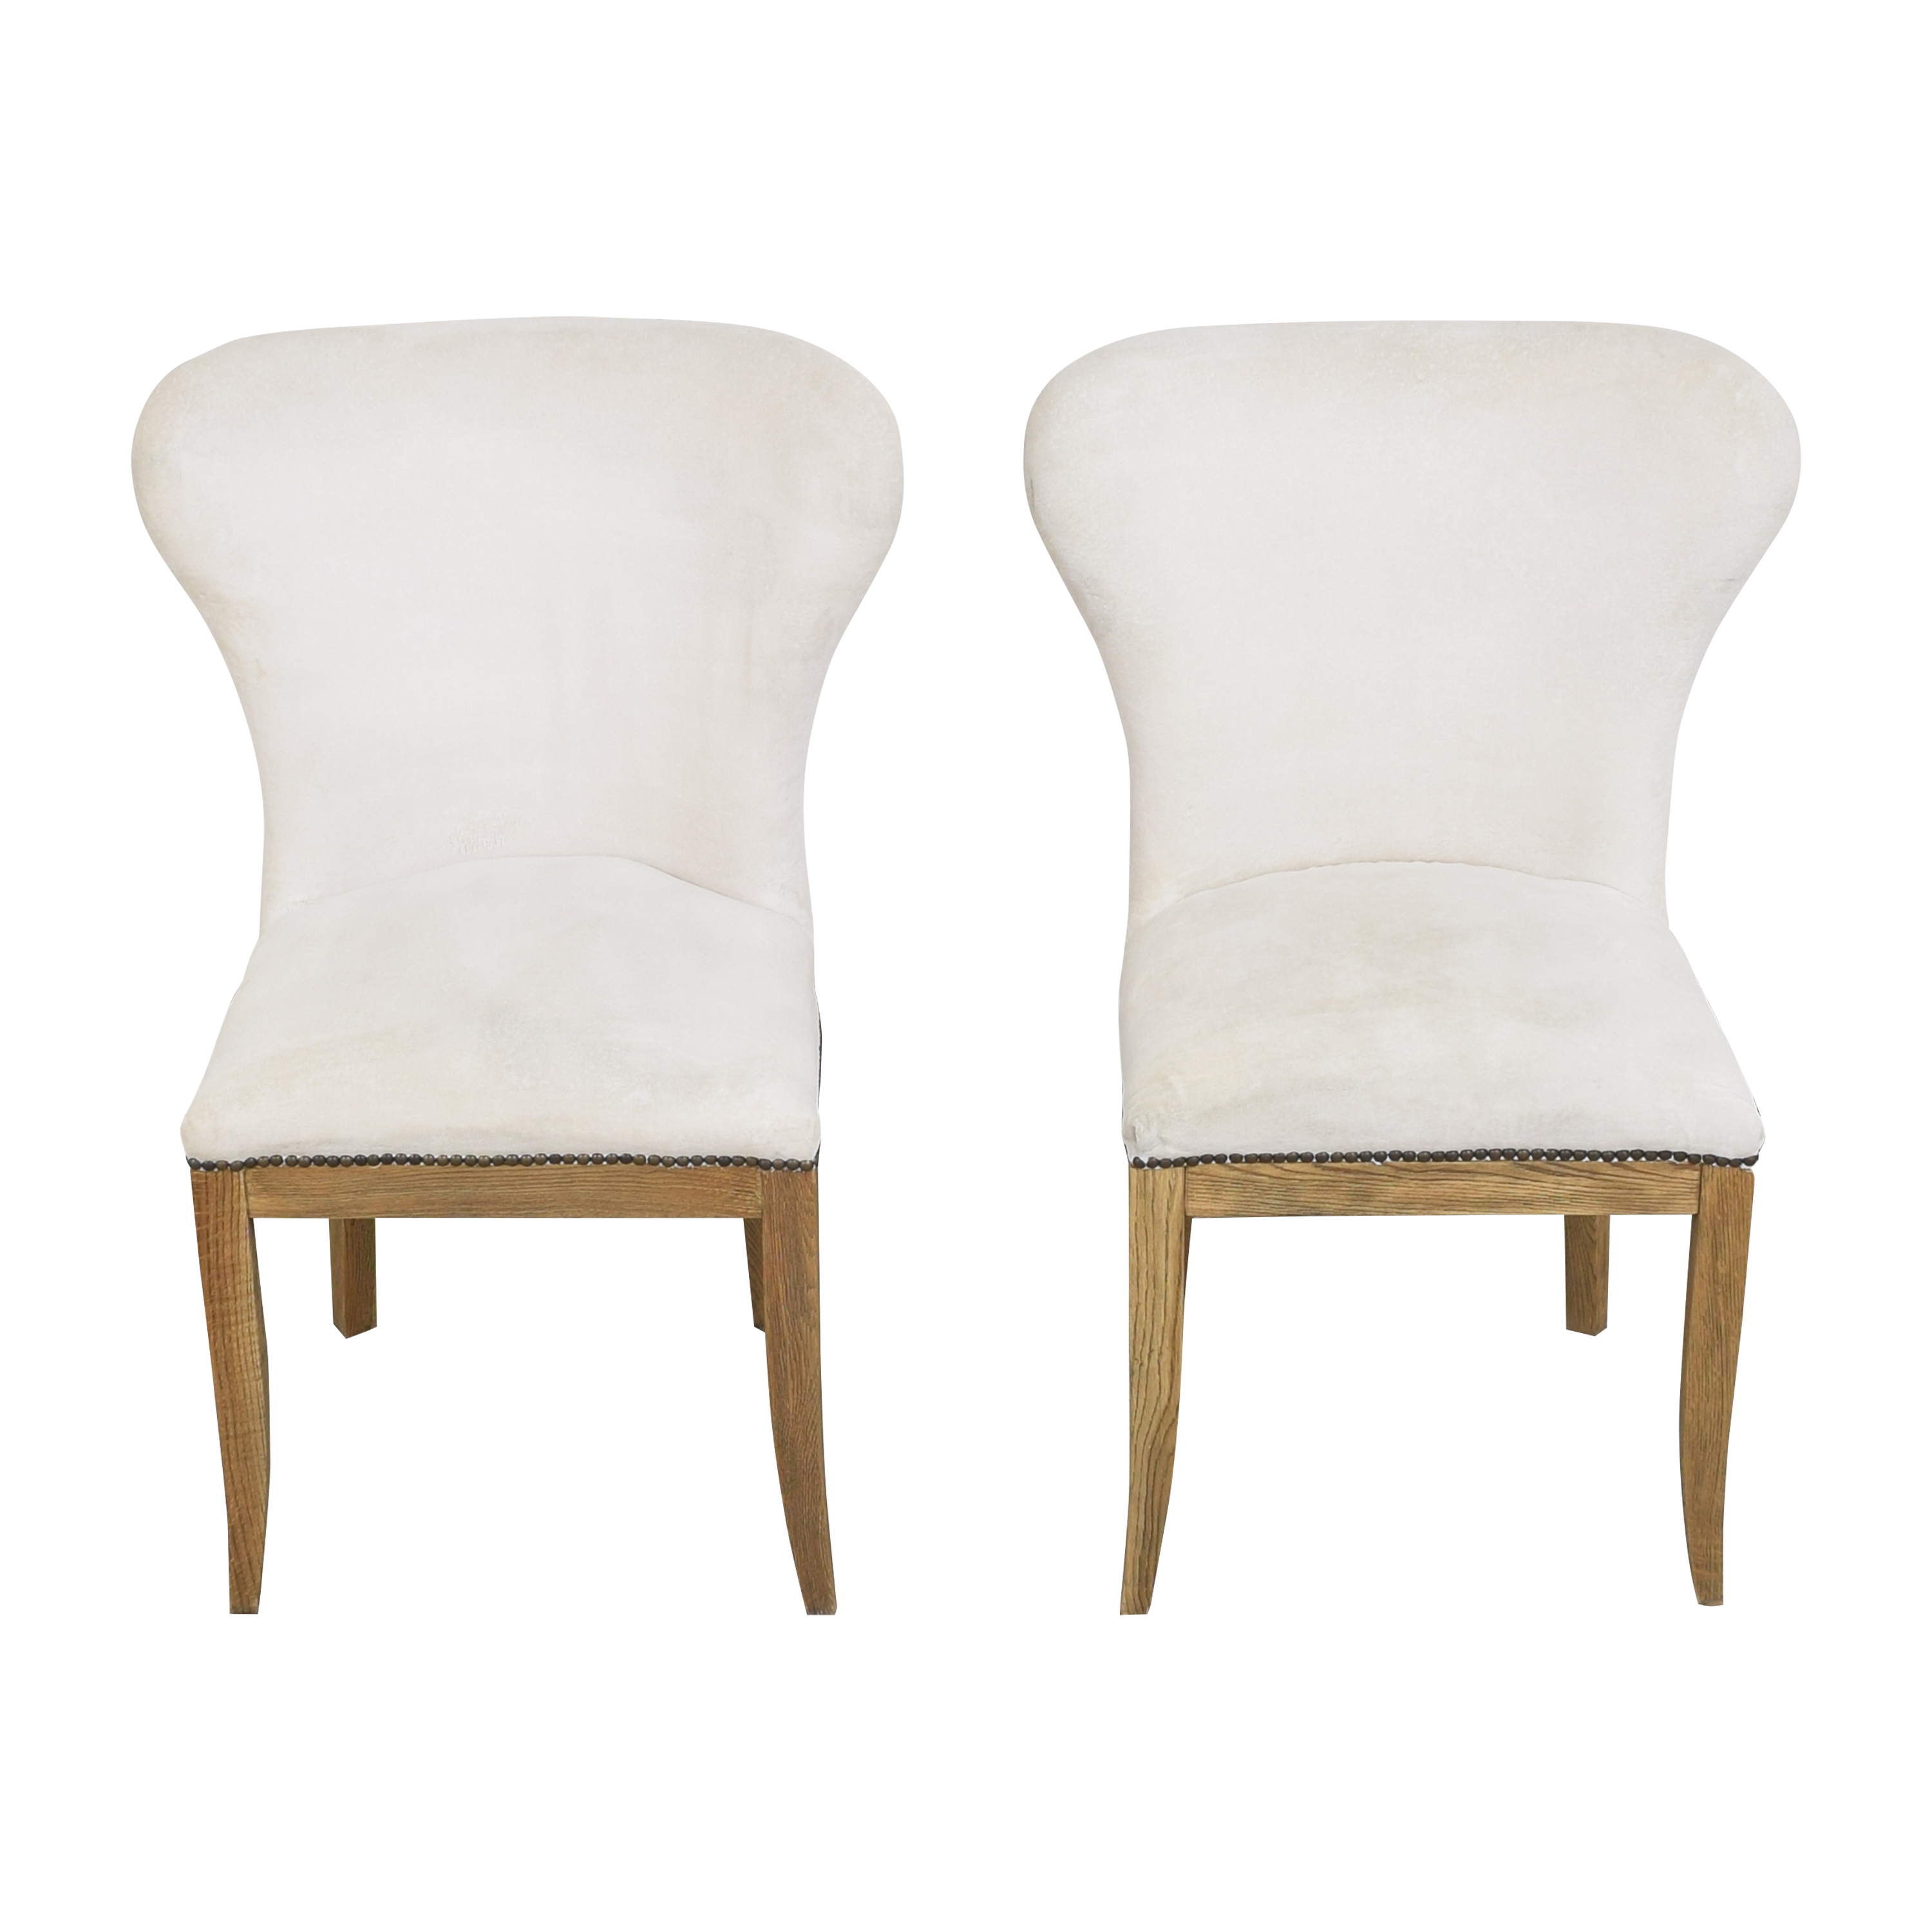 Restoration Hardware Restoration Hardware Upholstered Dining Chairs on sale